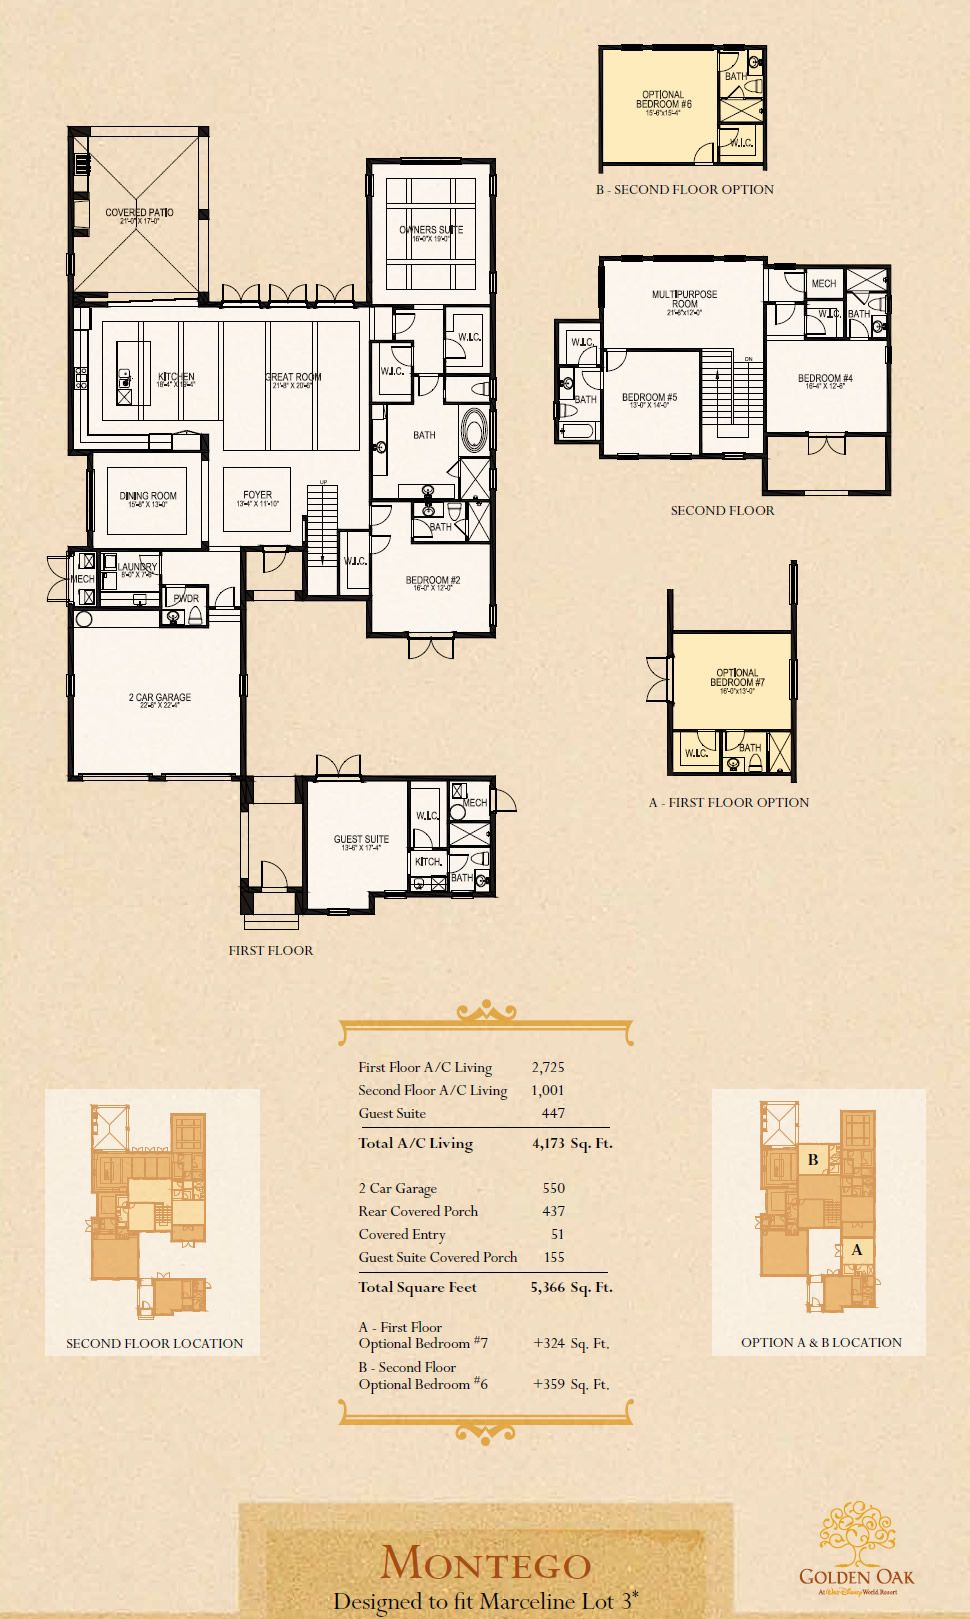 love house golden oak blueprints architecture plan orlando floor also pin by kimberly dugger on for the home in pinterest rh